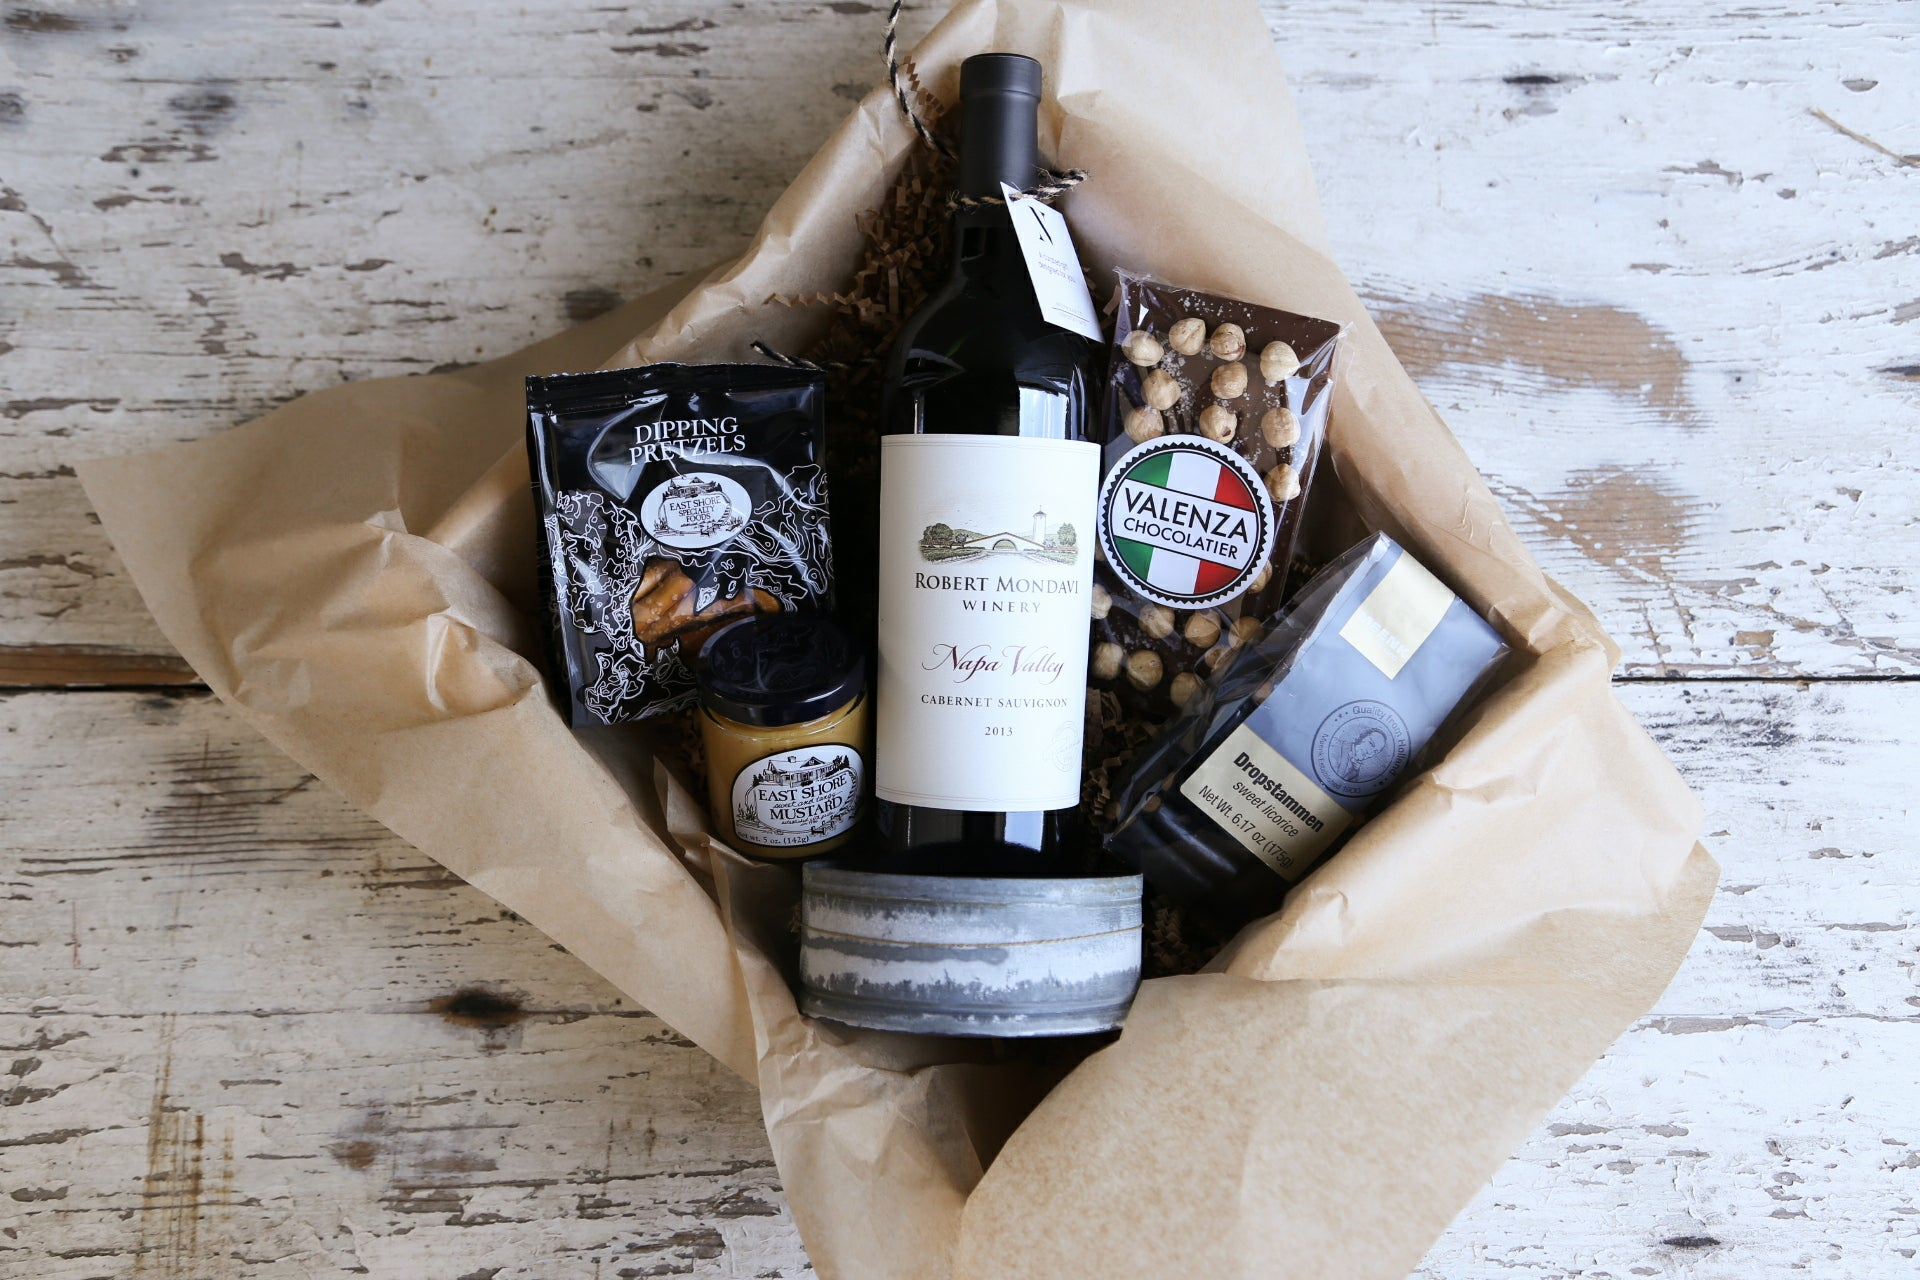 Gourmet Wine Gift: our personal favorite, this luxe crate contains wine, a wine coaster made from vintage materials, gourmet snacks & delicious Valenza chocolate. $125